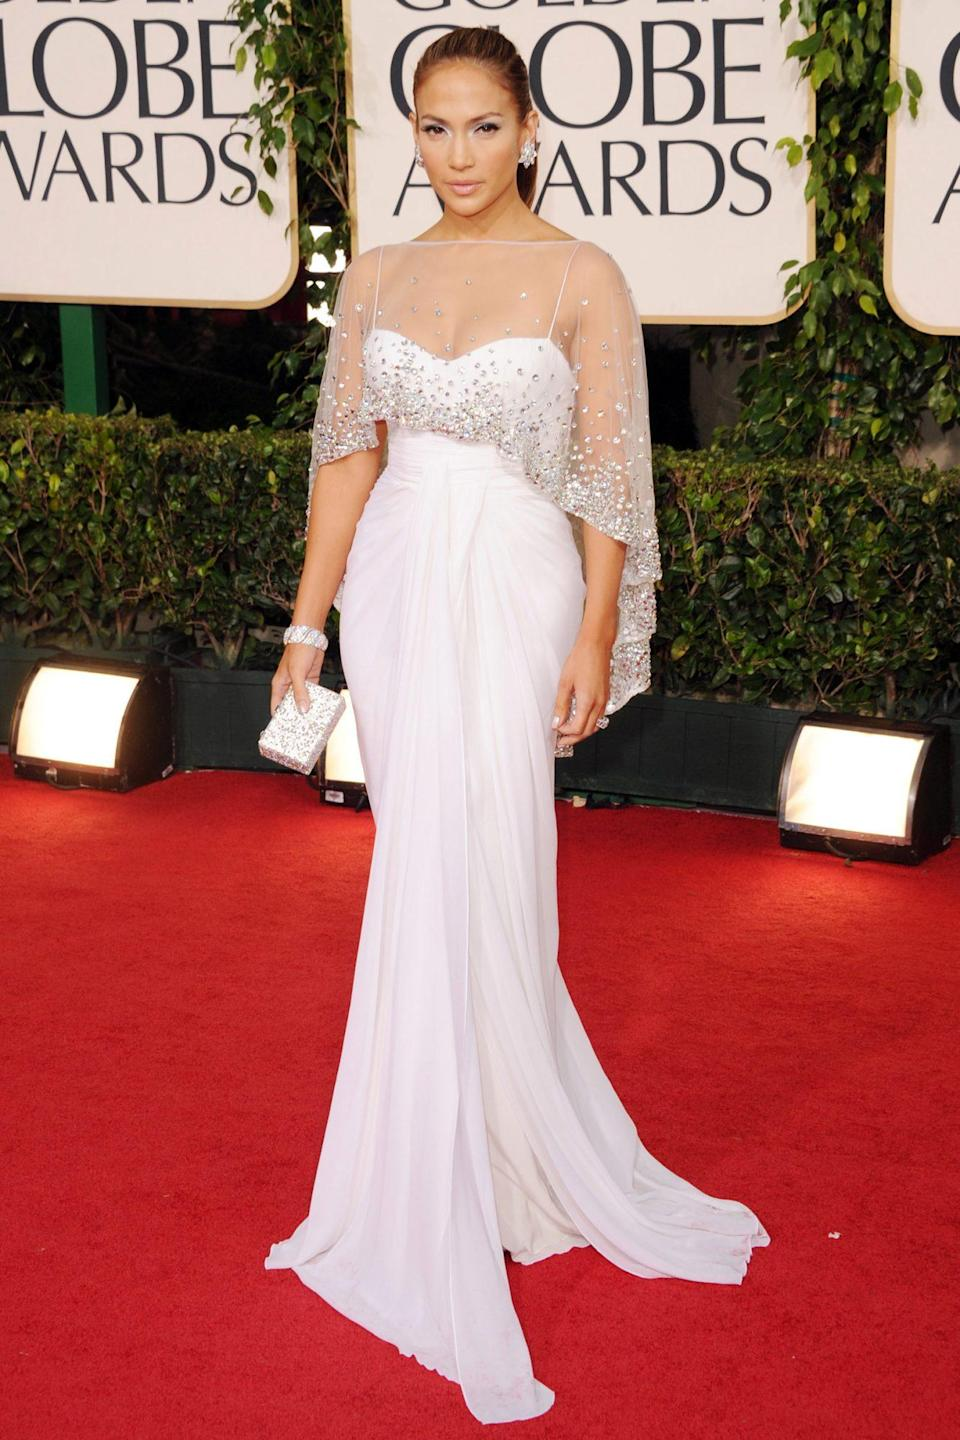 <p>The diva went demure: Jennifer Lope presented in an angelic caped Zuhair Murad gown.</p>